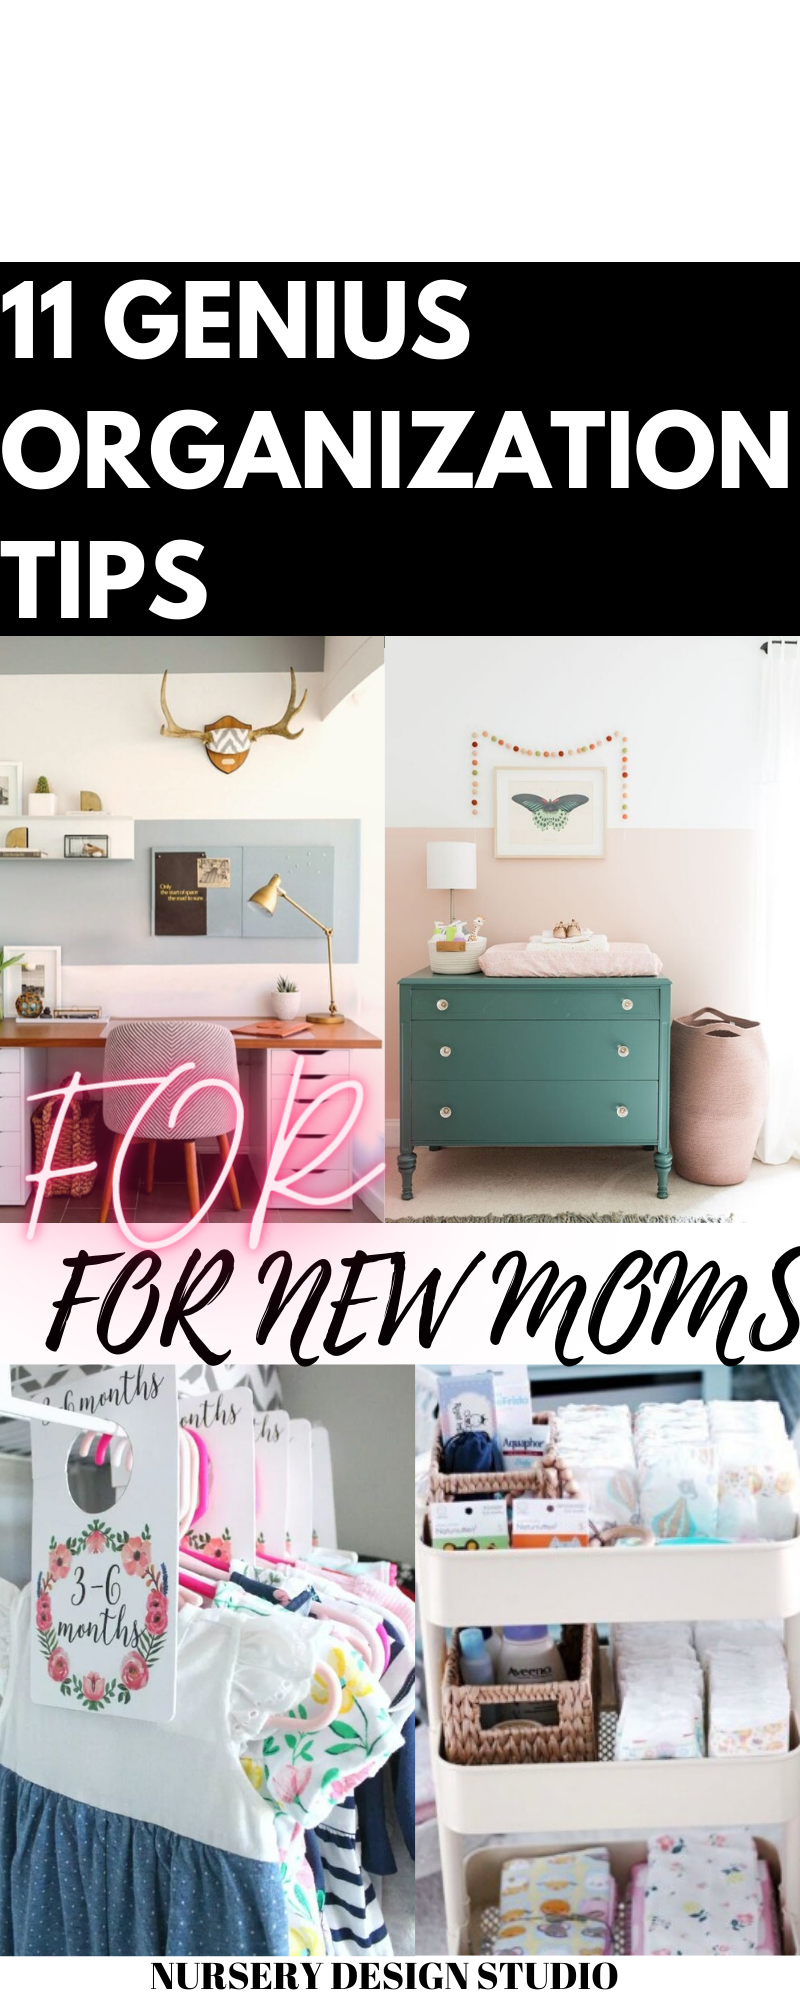 ORGANIZATION TIPS FOR NEW MOMS